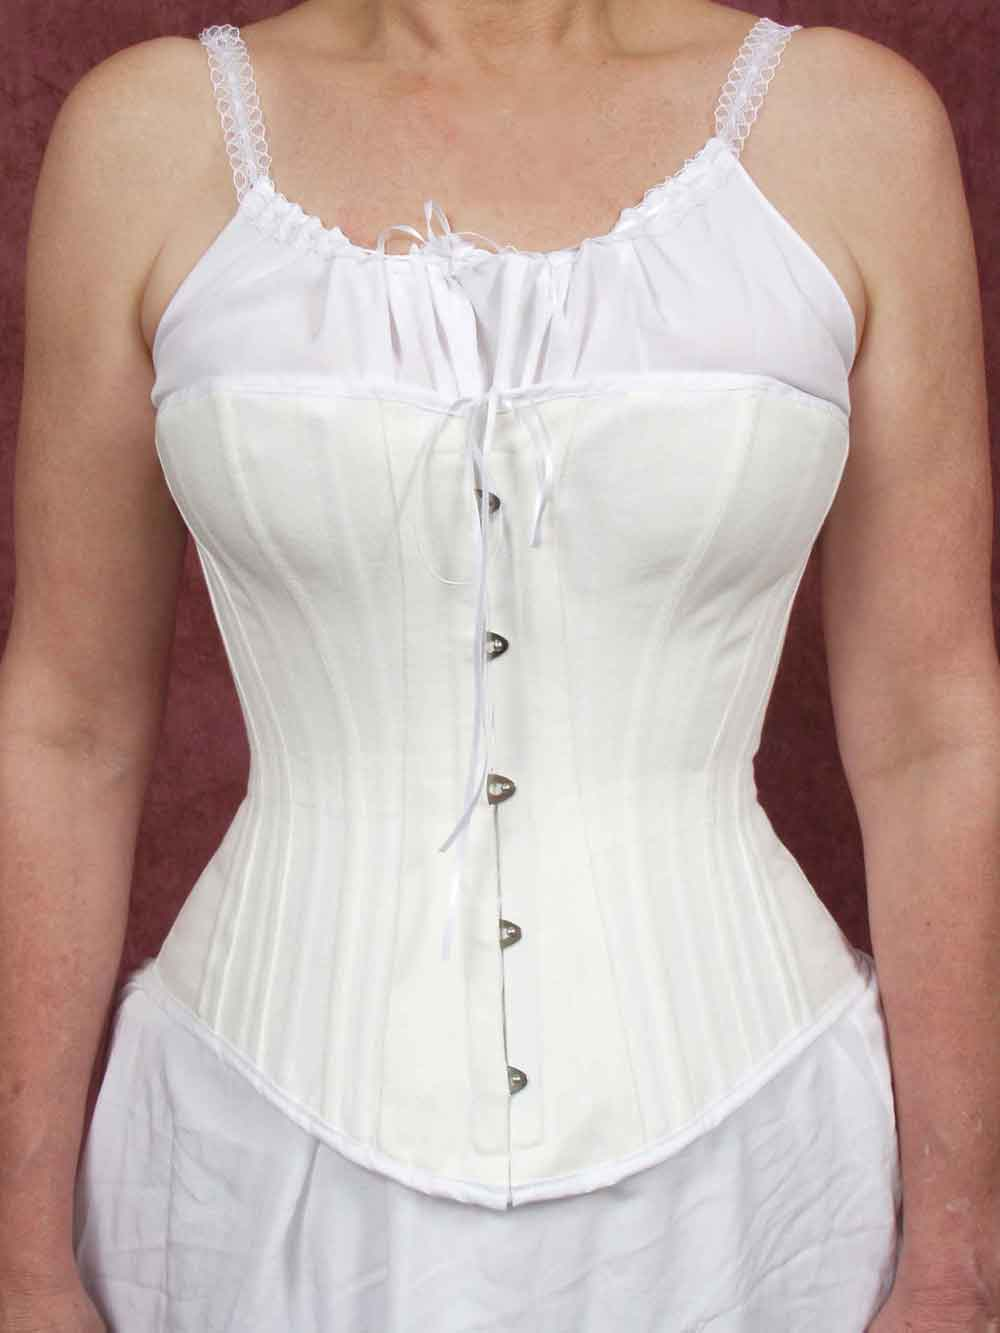 ~Corsets denver~ || ~girdles and corsets for boys~